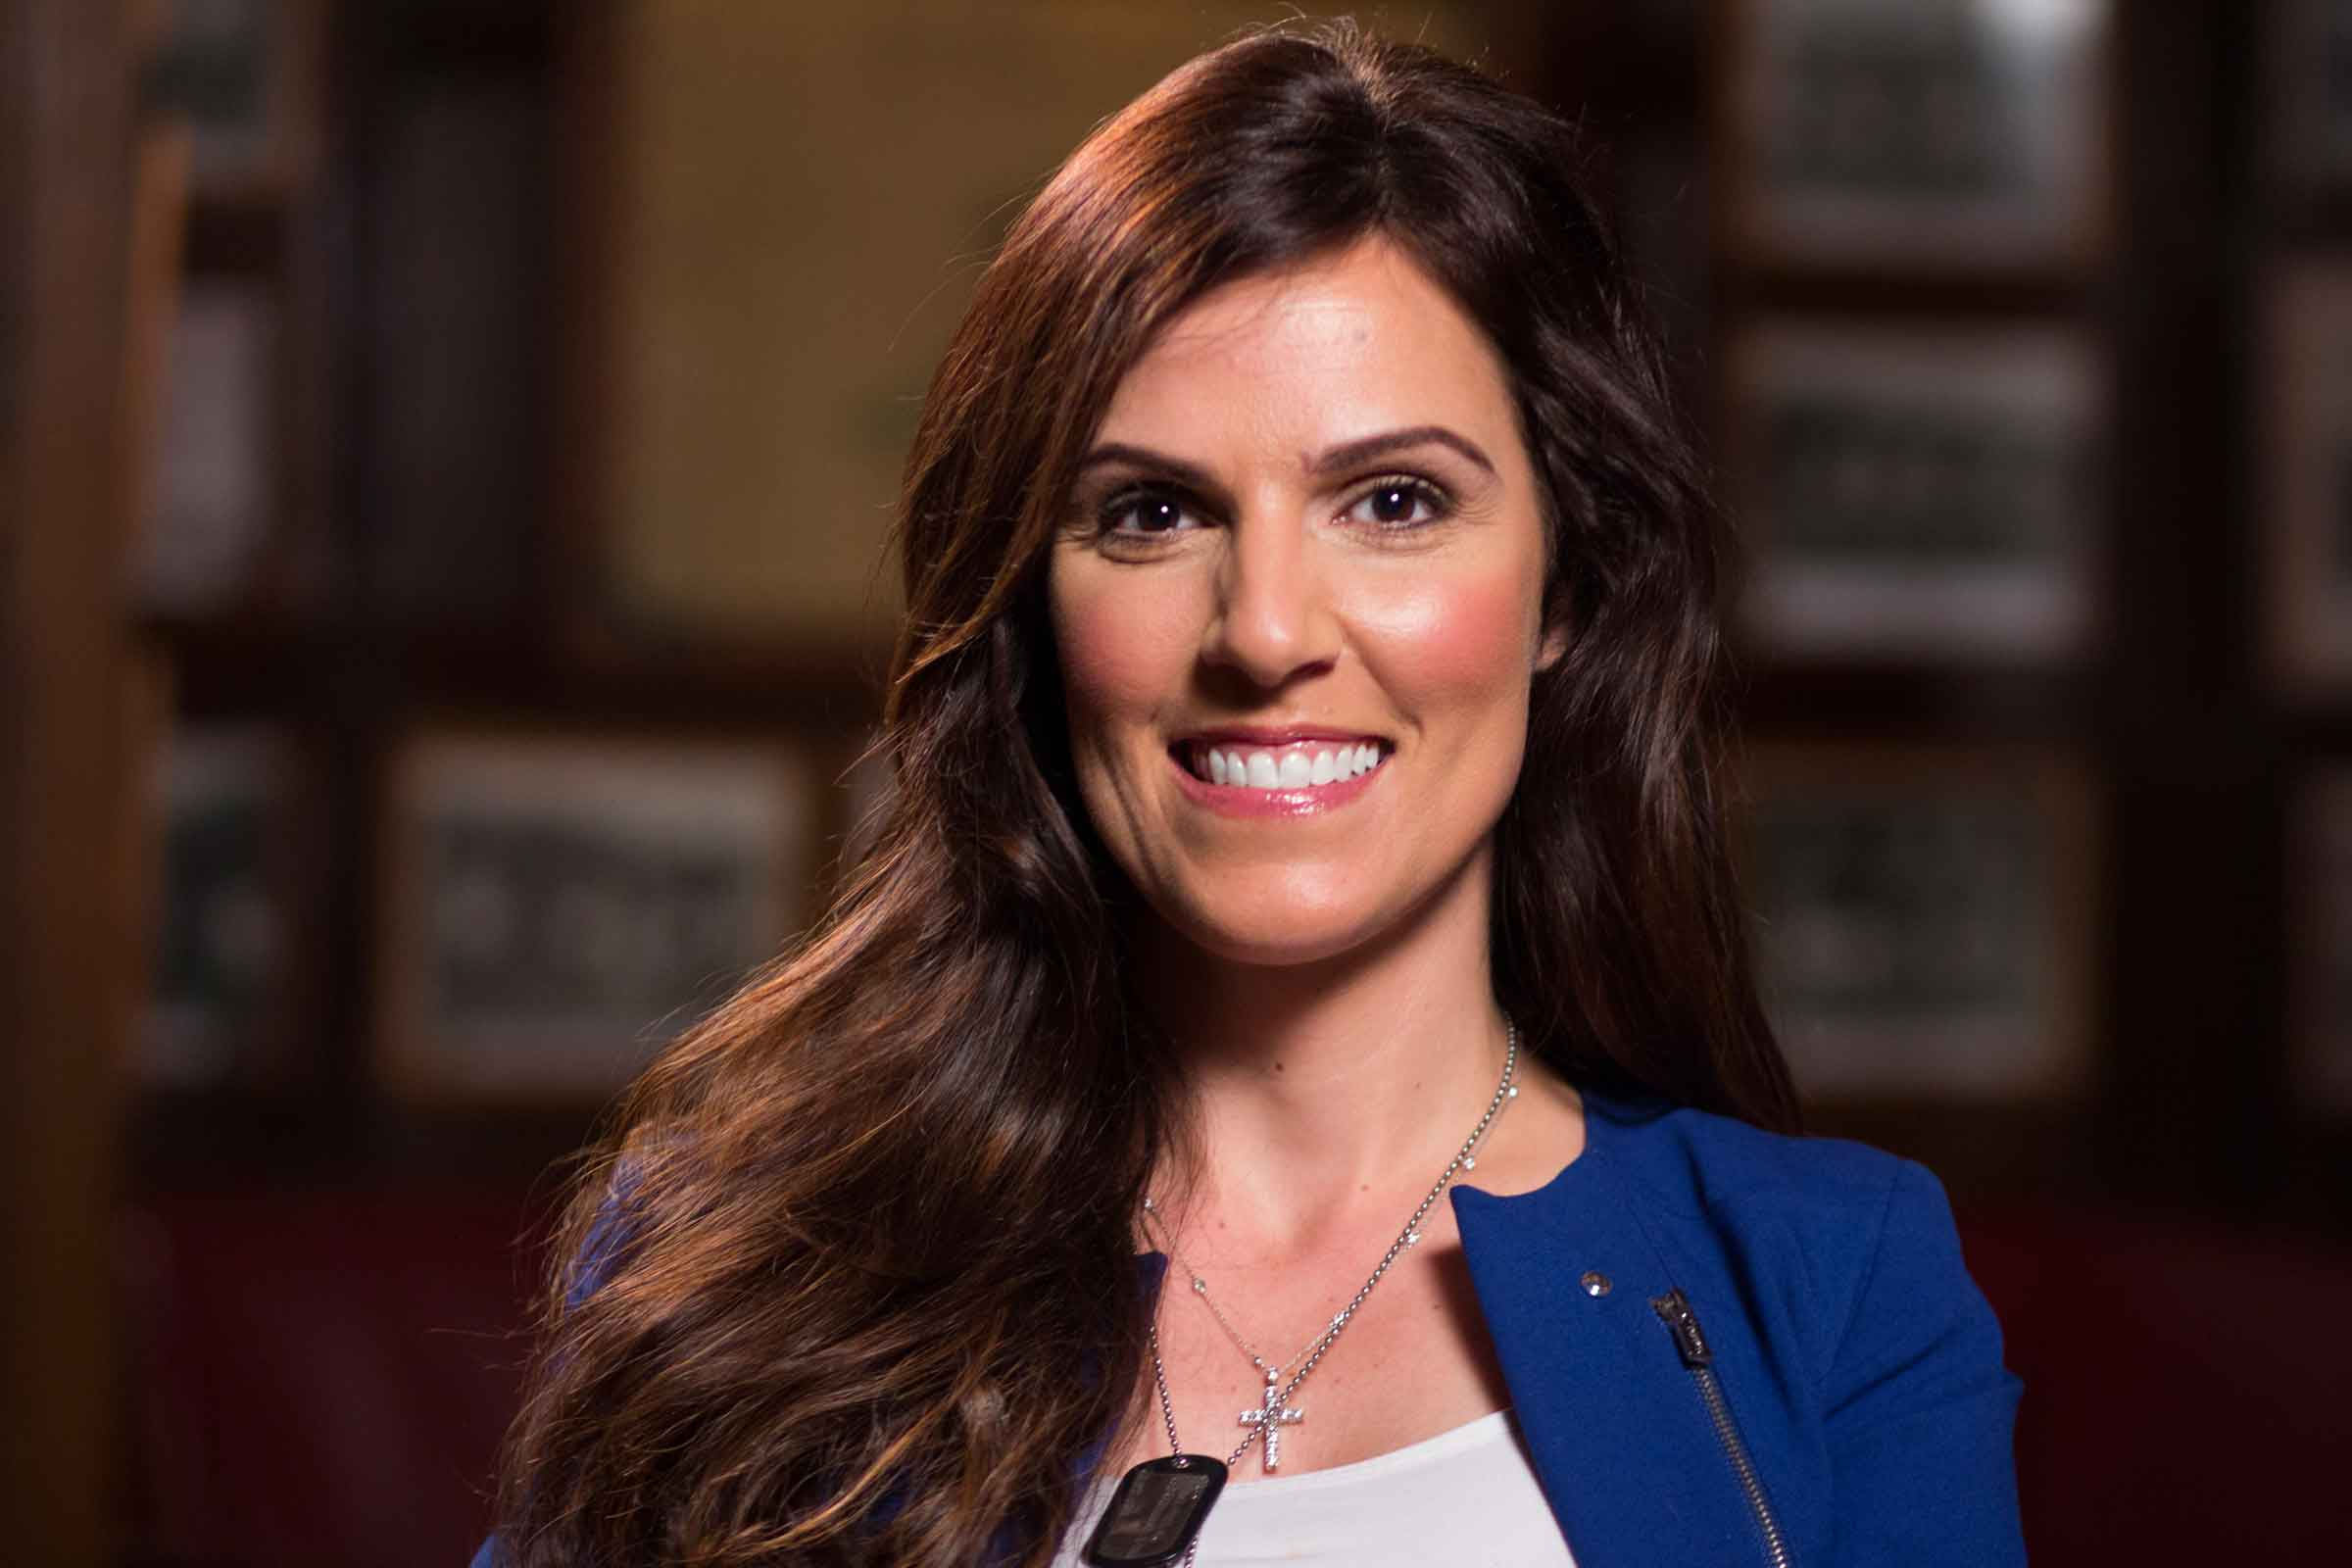 Desert War Veterans Remembrance Day with Taya Kyle